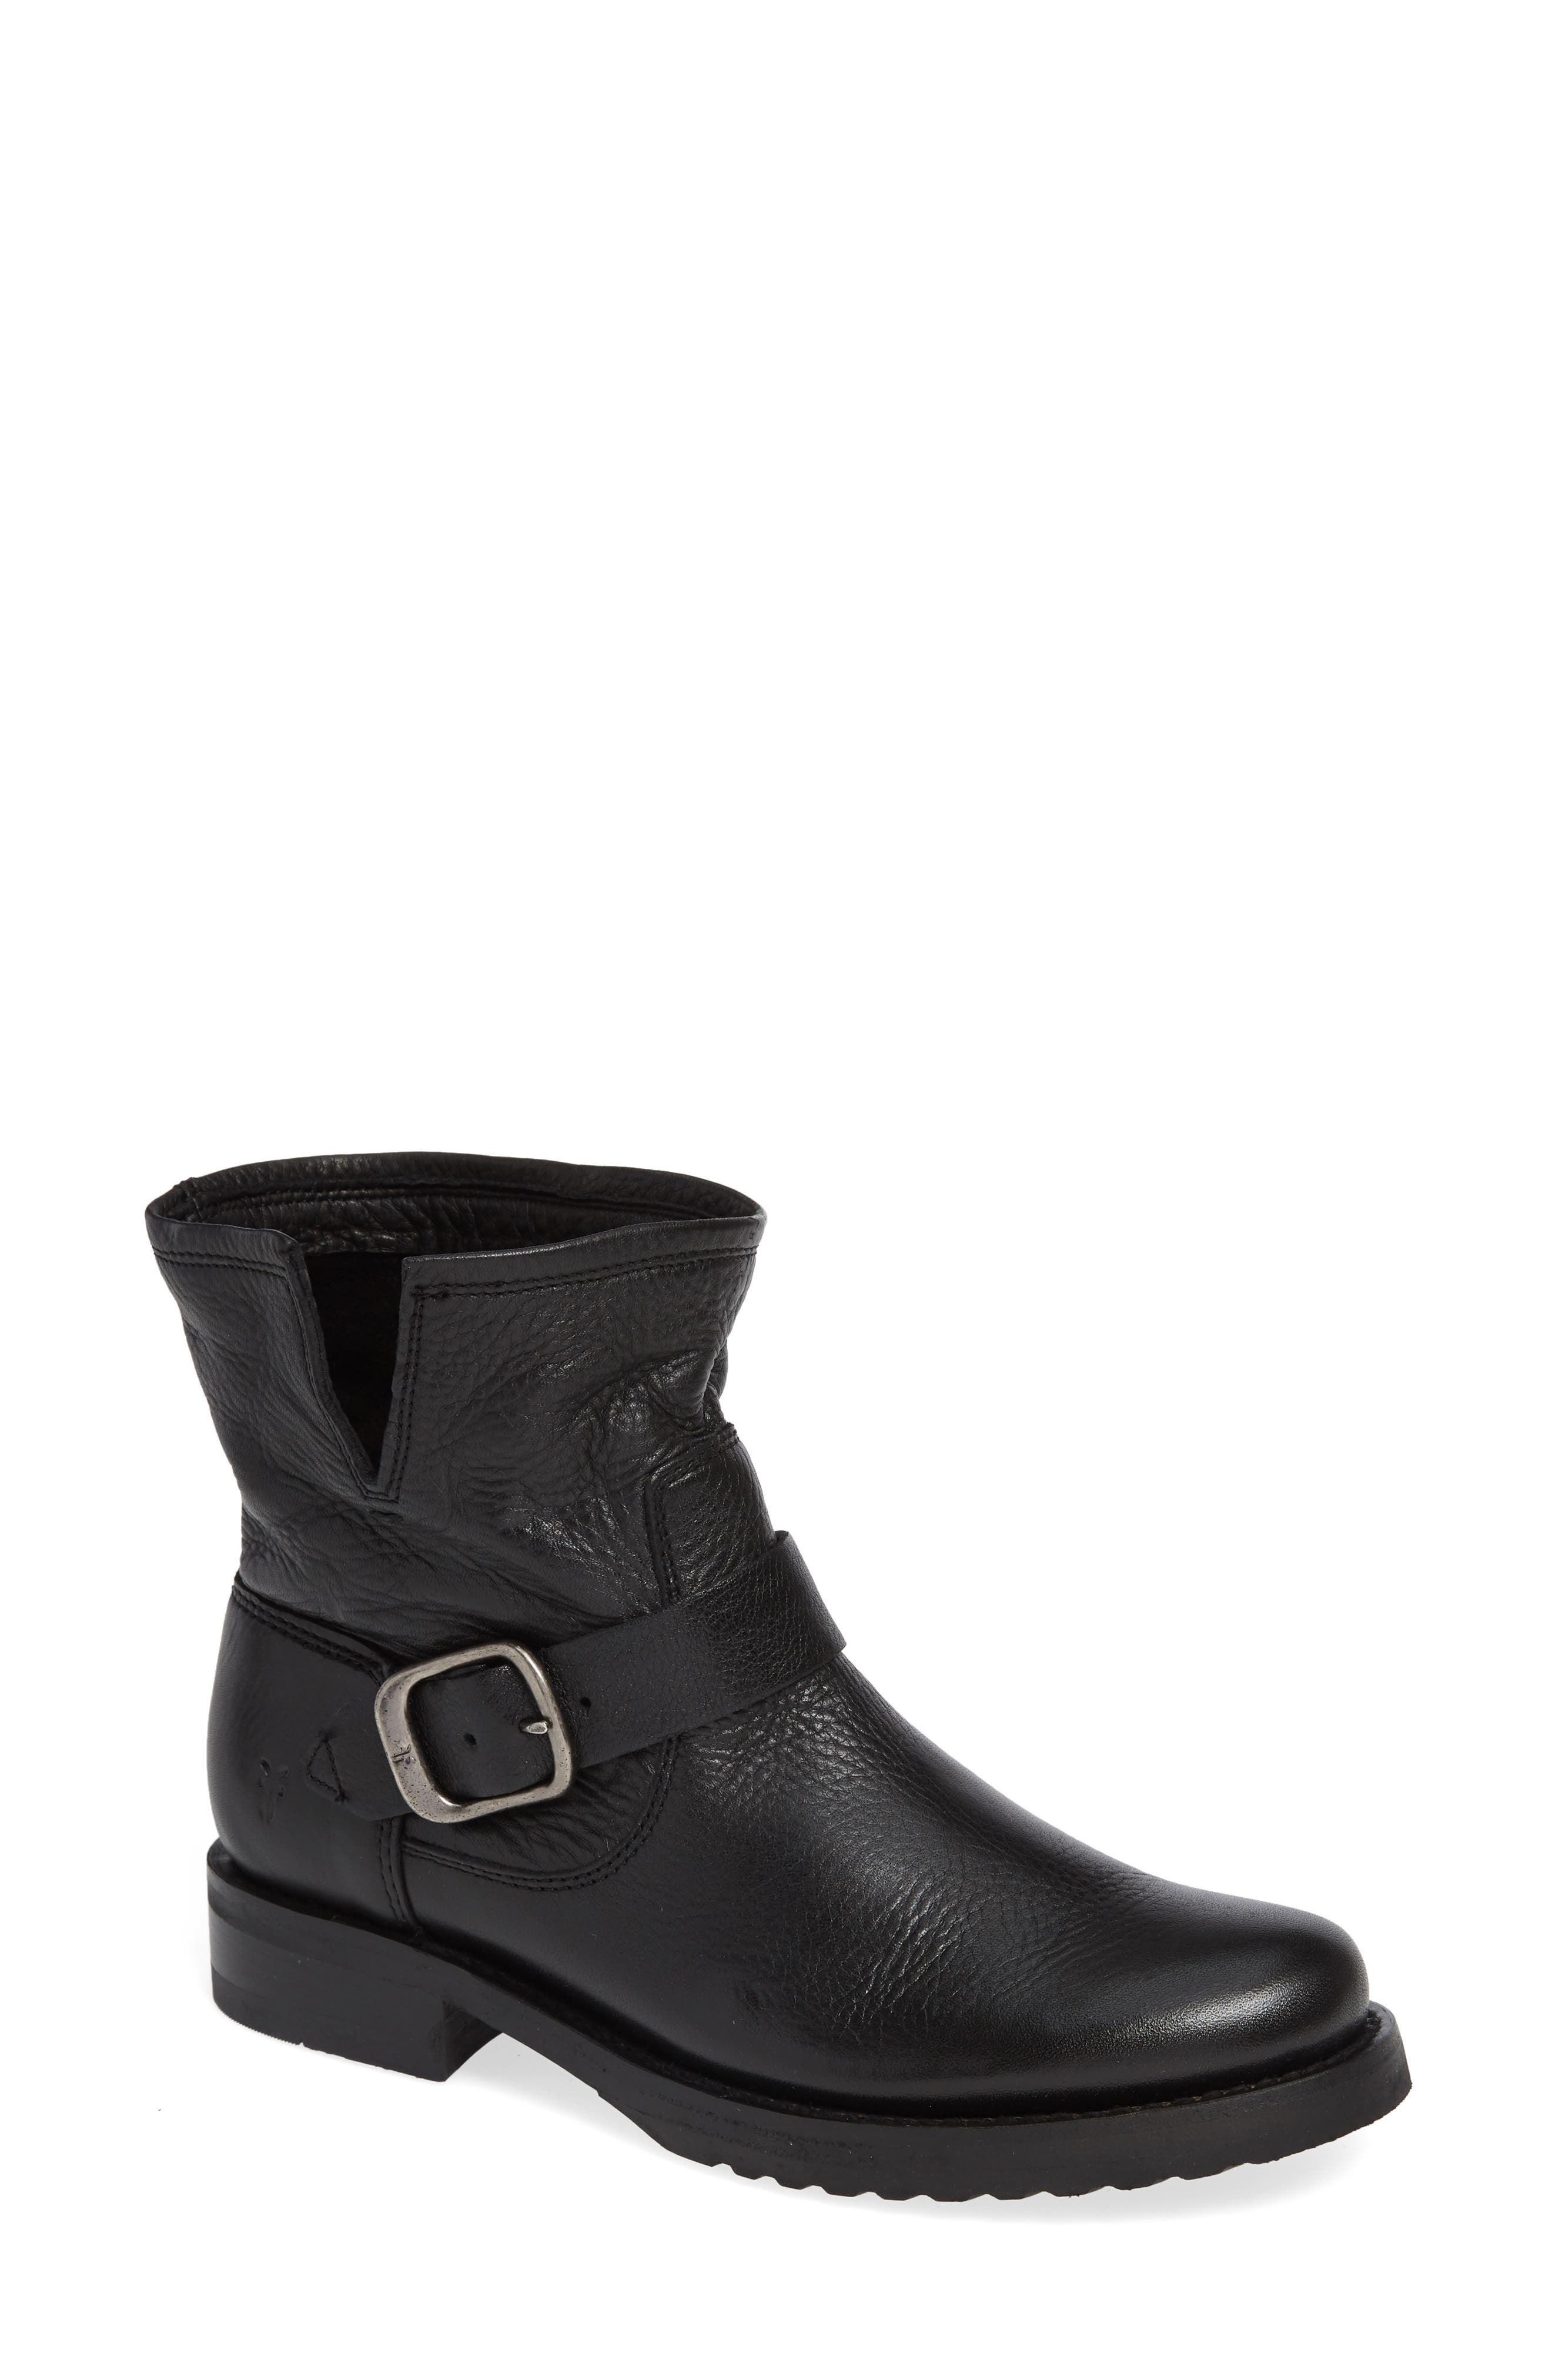 FRYE, Veronica Bootie, Main thumbnail 1, color, BLACK LEATHER